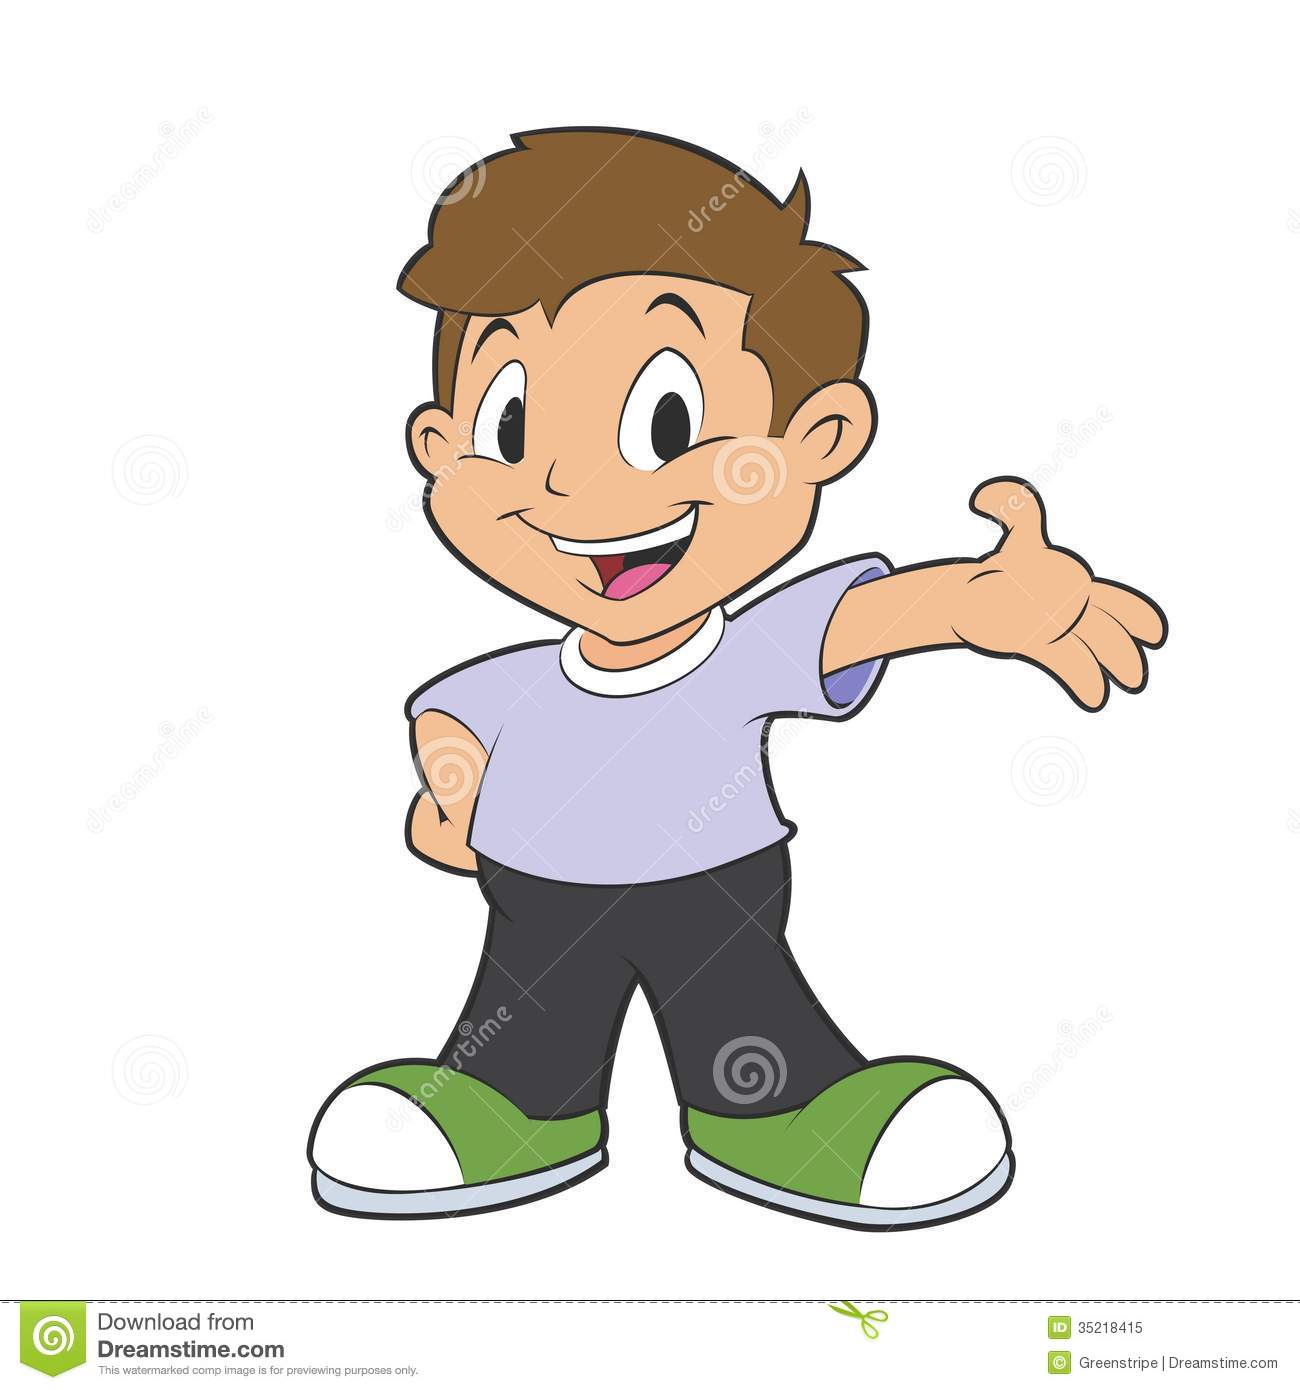 Boy clipart images 6 » Clipart Station.